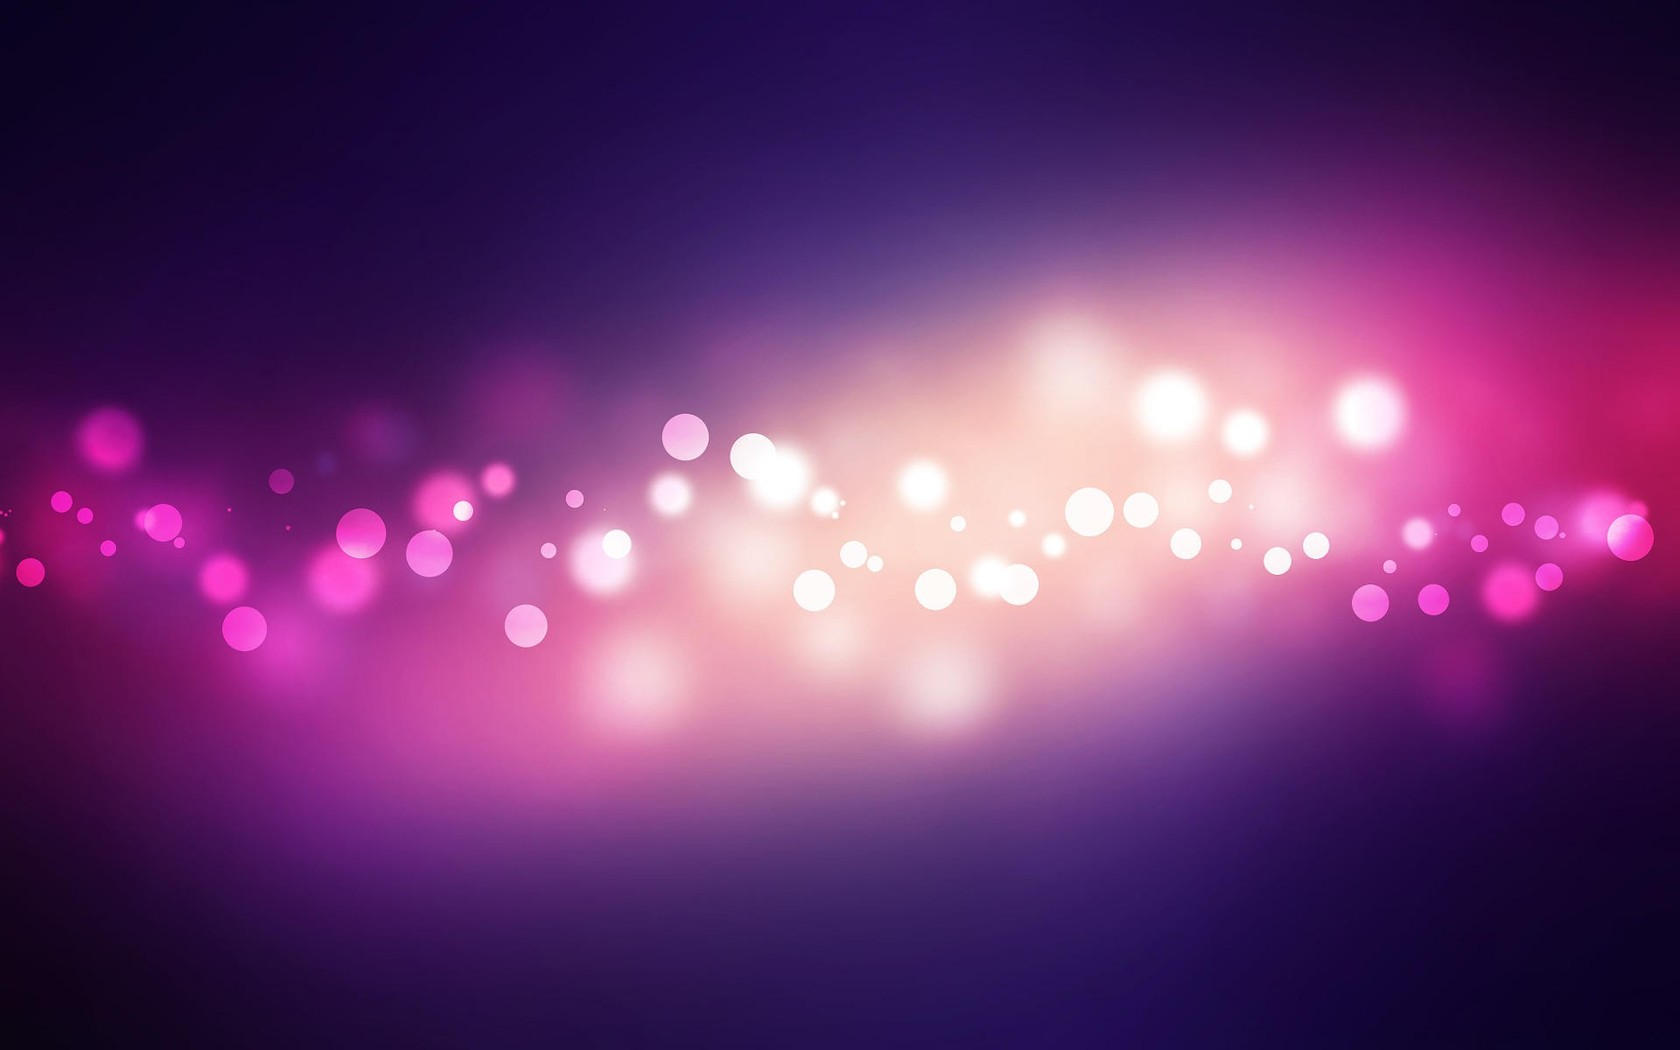 Abstract Glowing Wallpaper